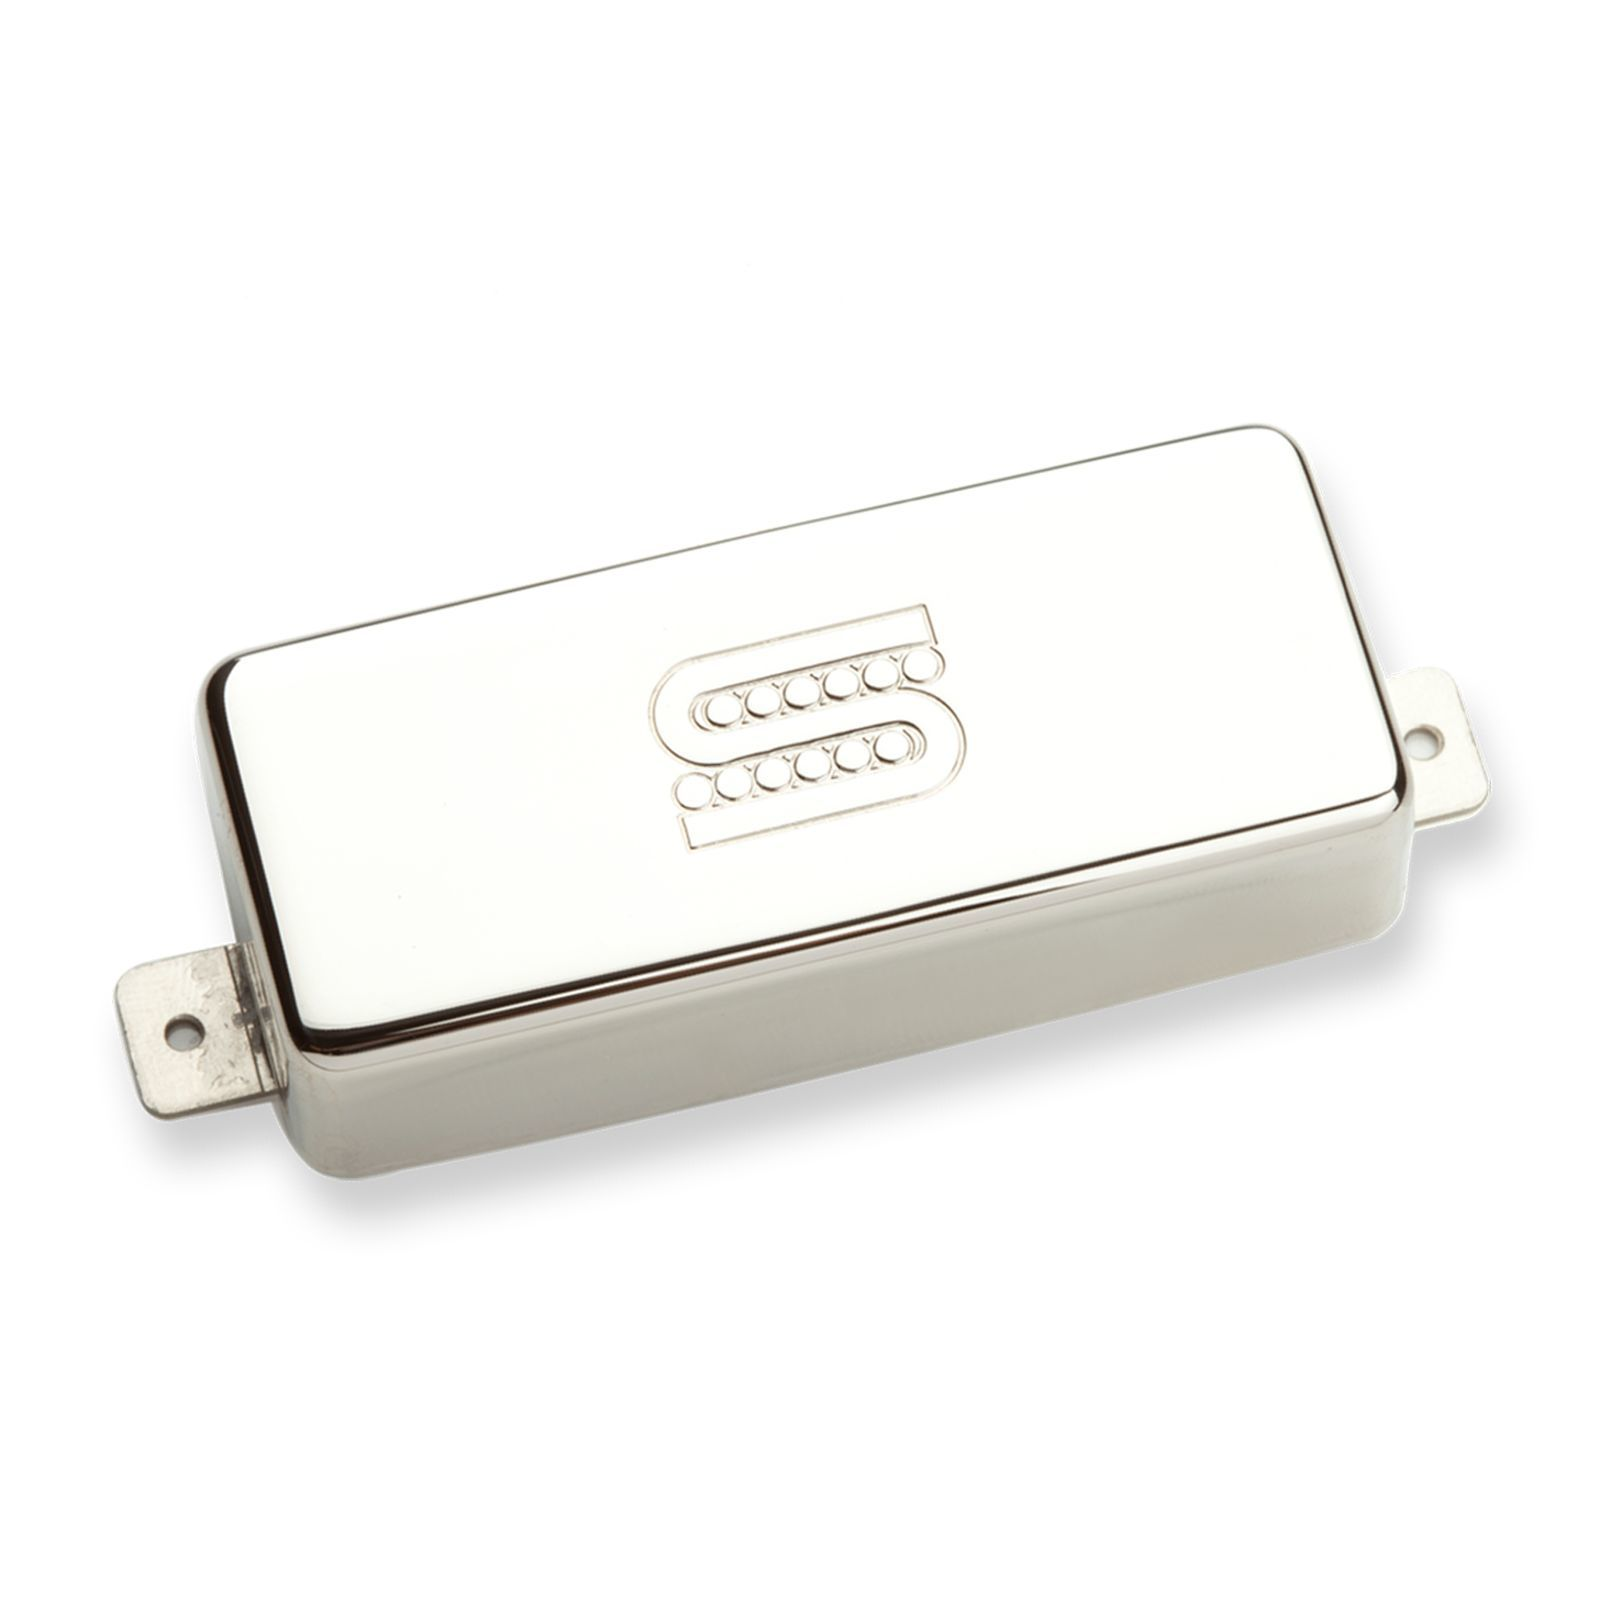 Seymour Duncan SM-2n Custom Mini Humbucker Neck Chrome Produktbild